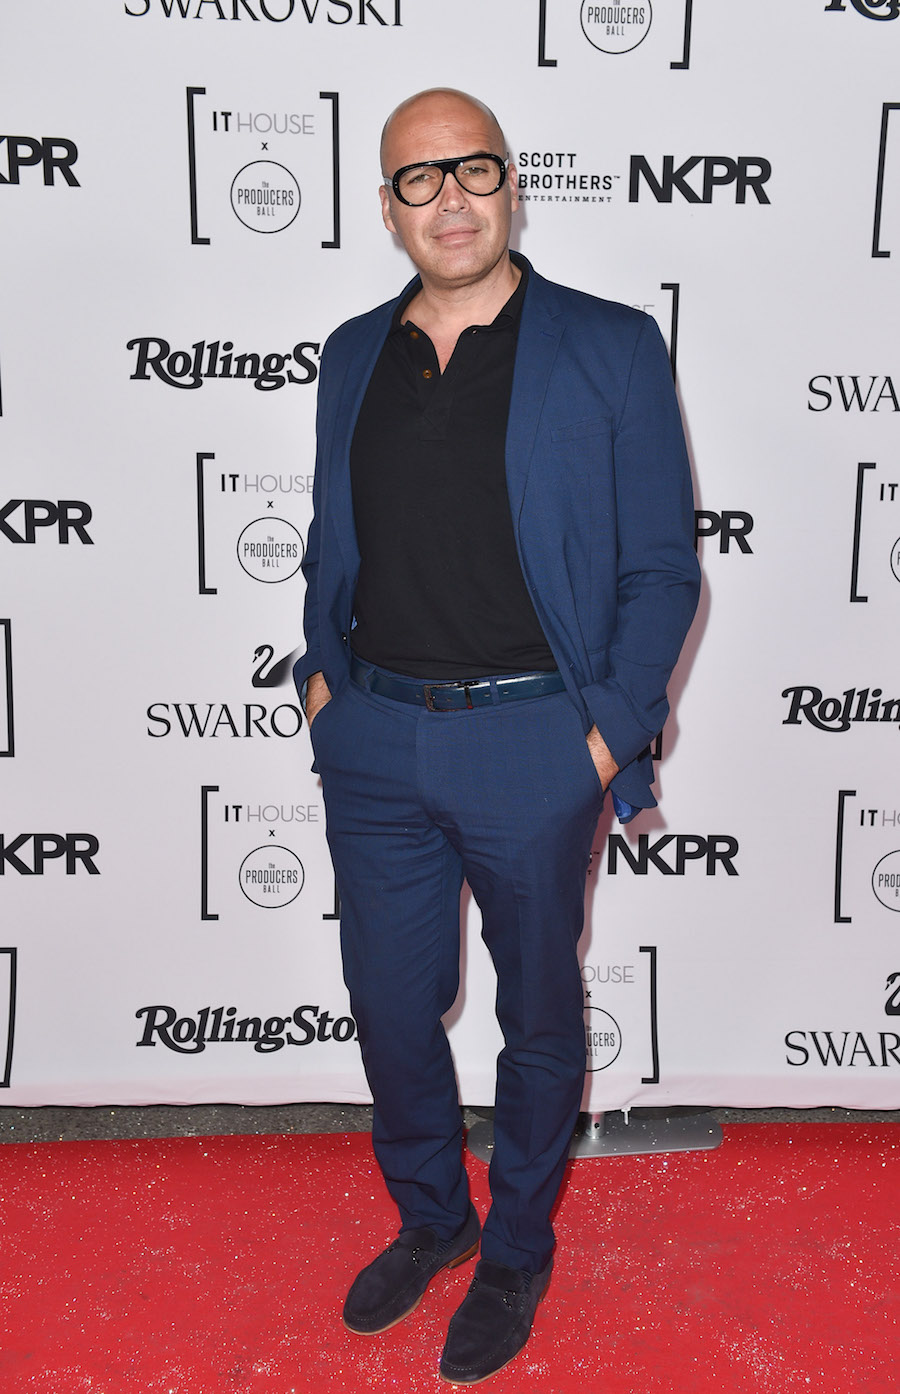 Billy Zane at the IT House x Producers Ball (Photo: Courtesy of NKPR) | View the VIBE